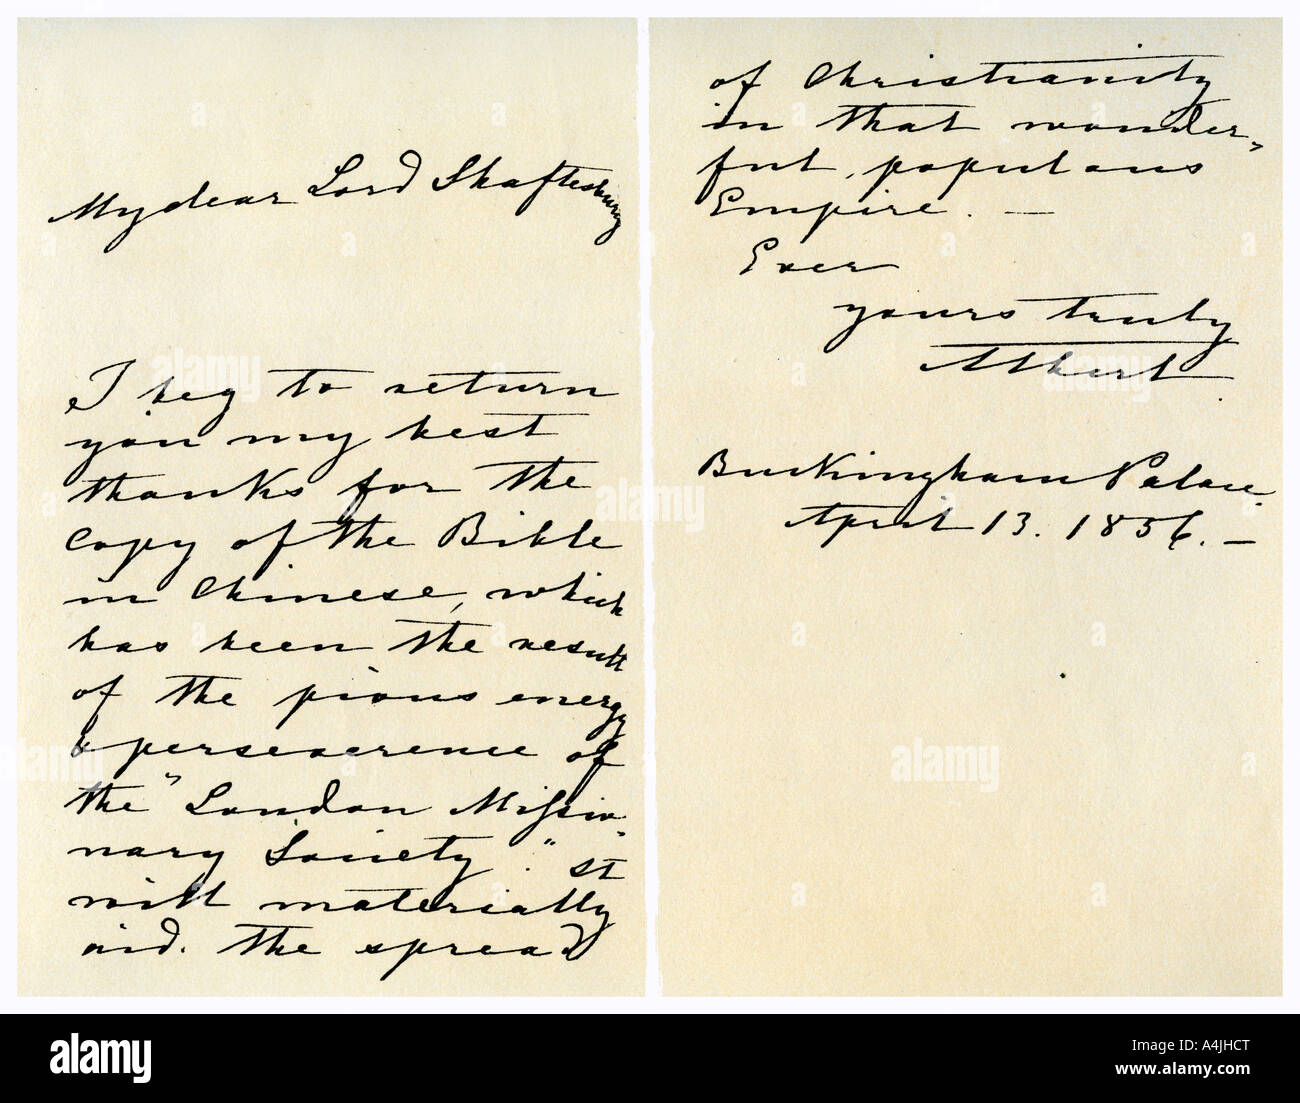 Letter from Albert, Prince Consort to Anthony Ashley Cooper, 13th April 1856.Artist: Prince Albert - Stock Image